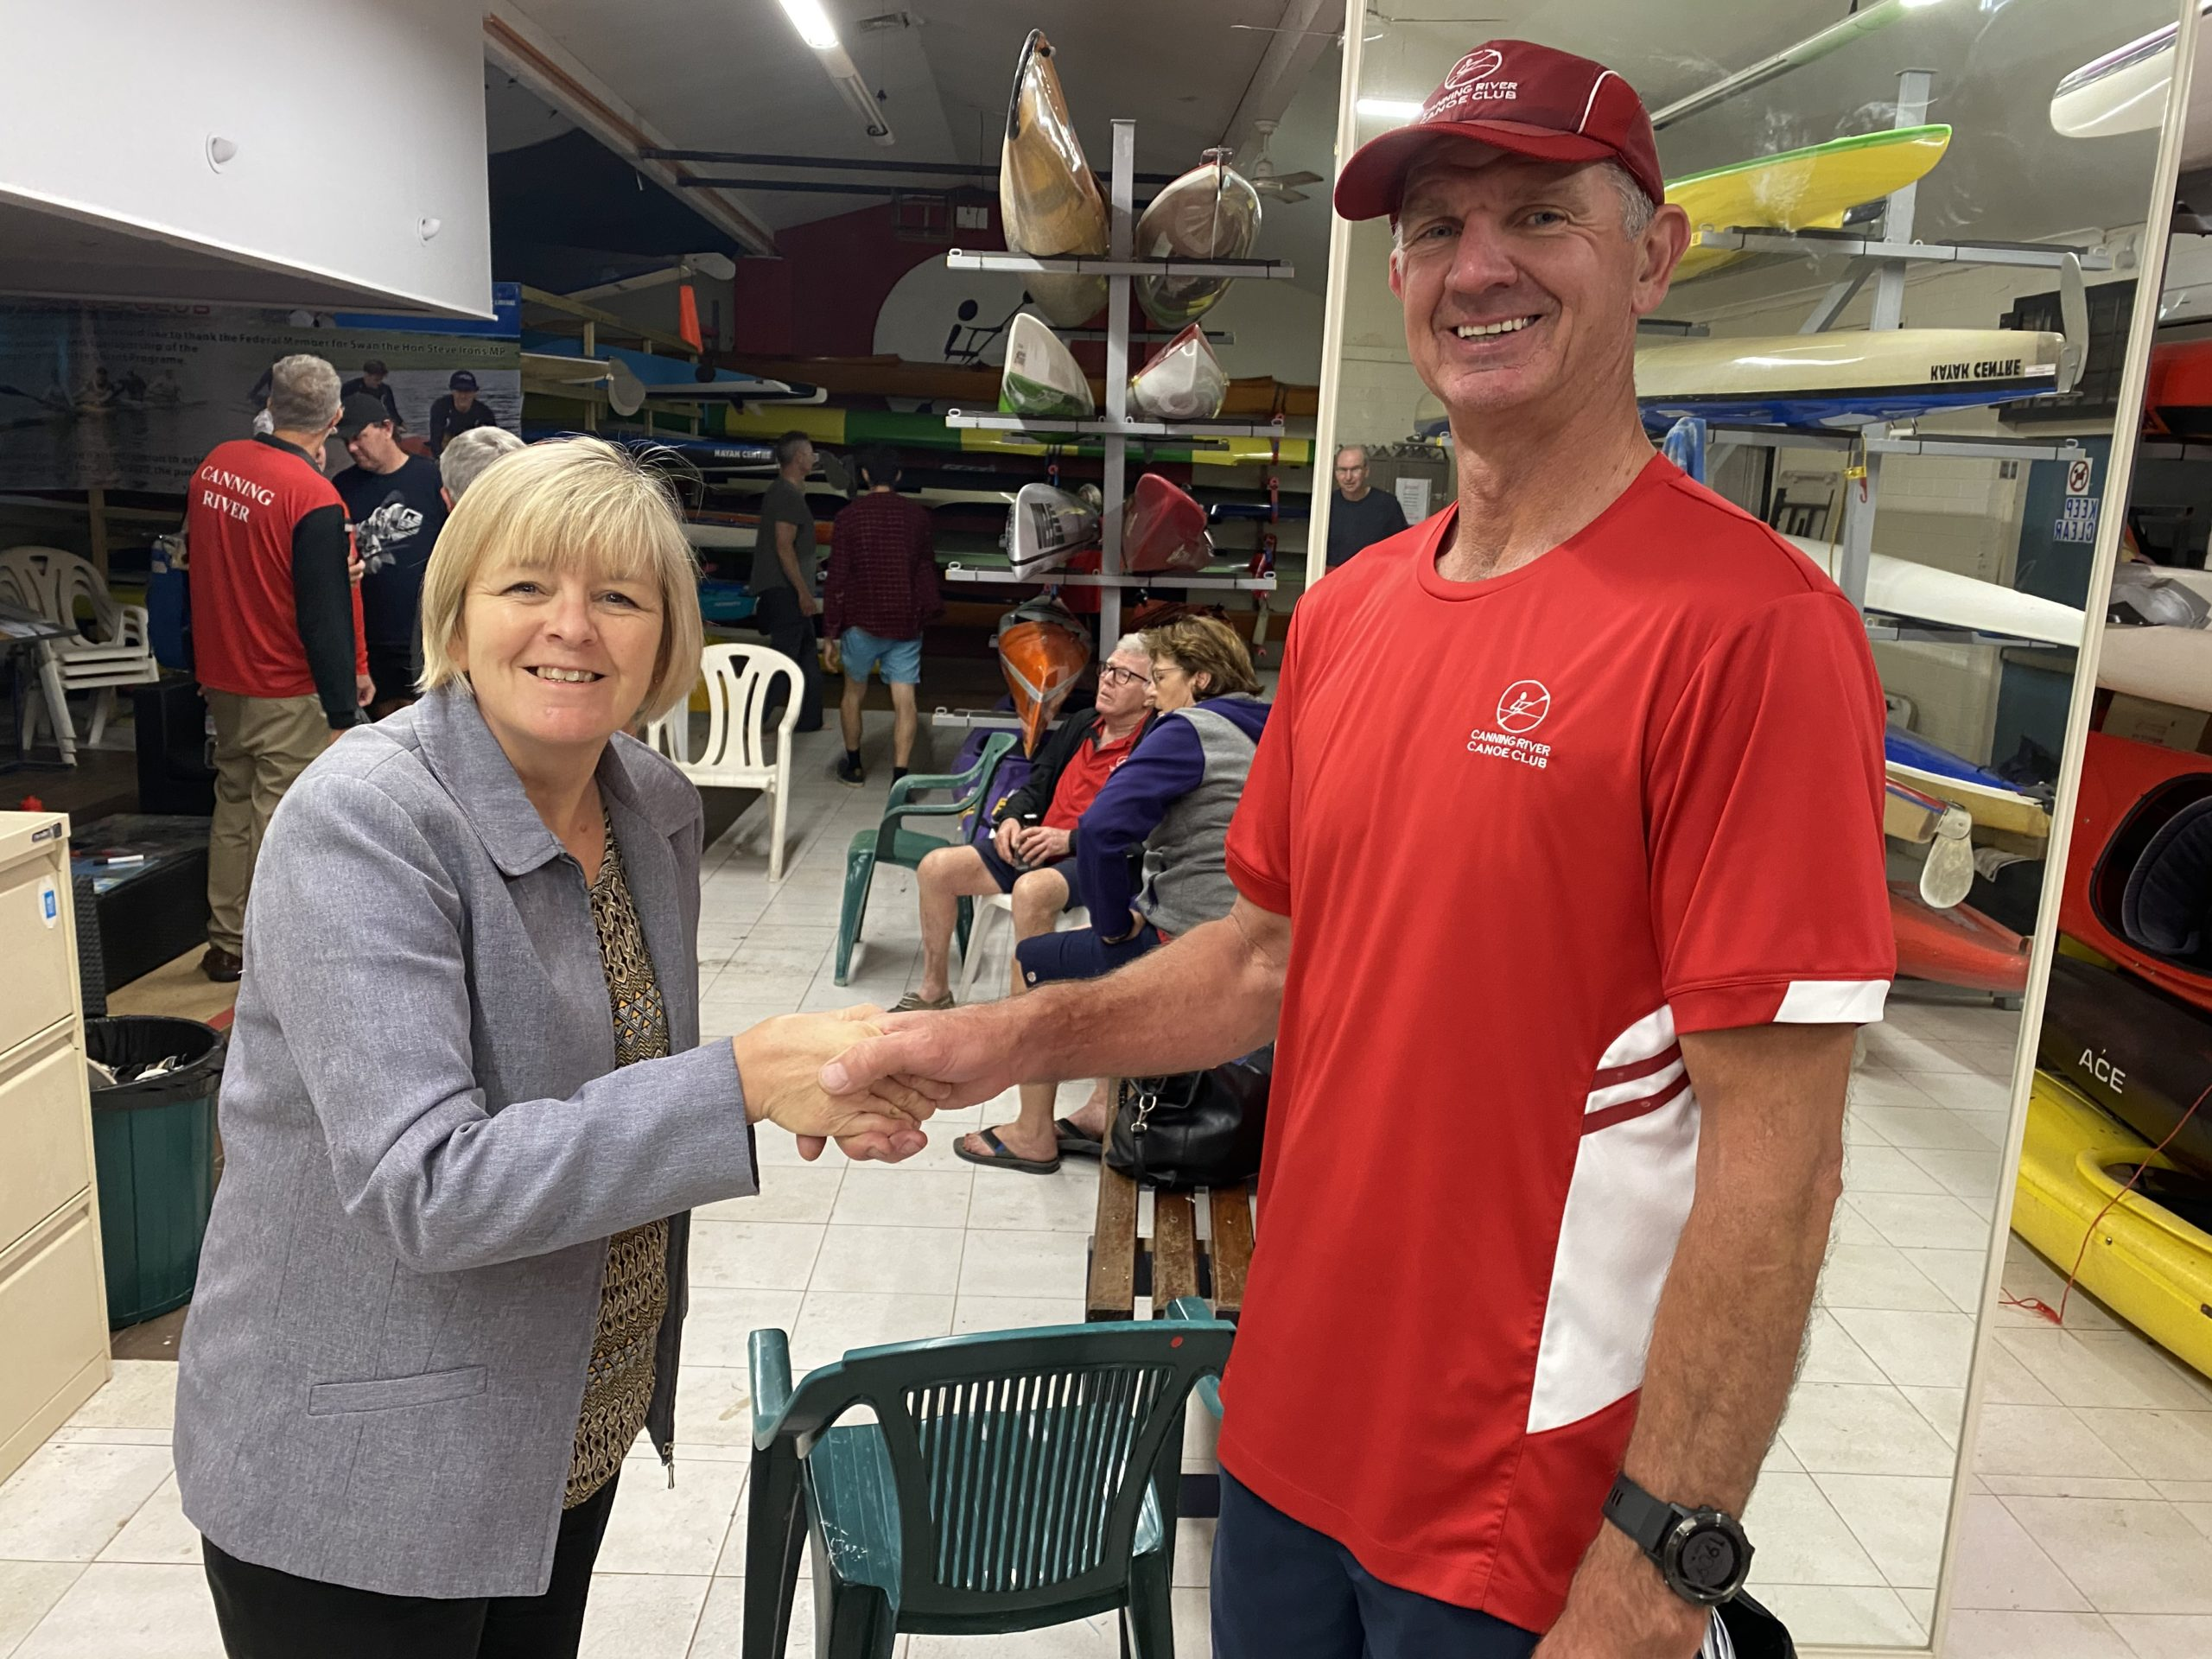 Tuesday 27th October 2020: Tonight's photos shows club member Judith Thompson presenting David McCaulay with a Club Cap as a prize.